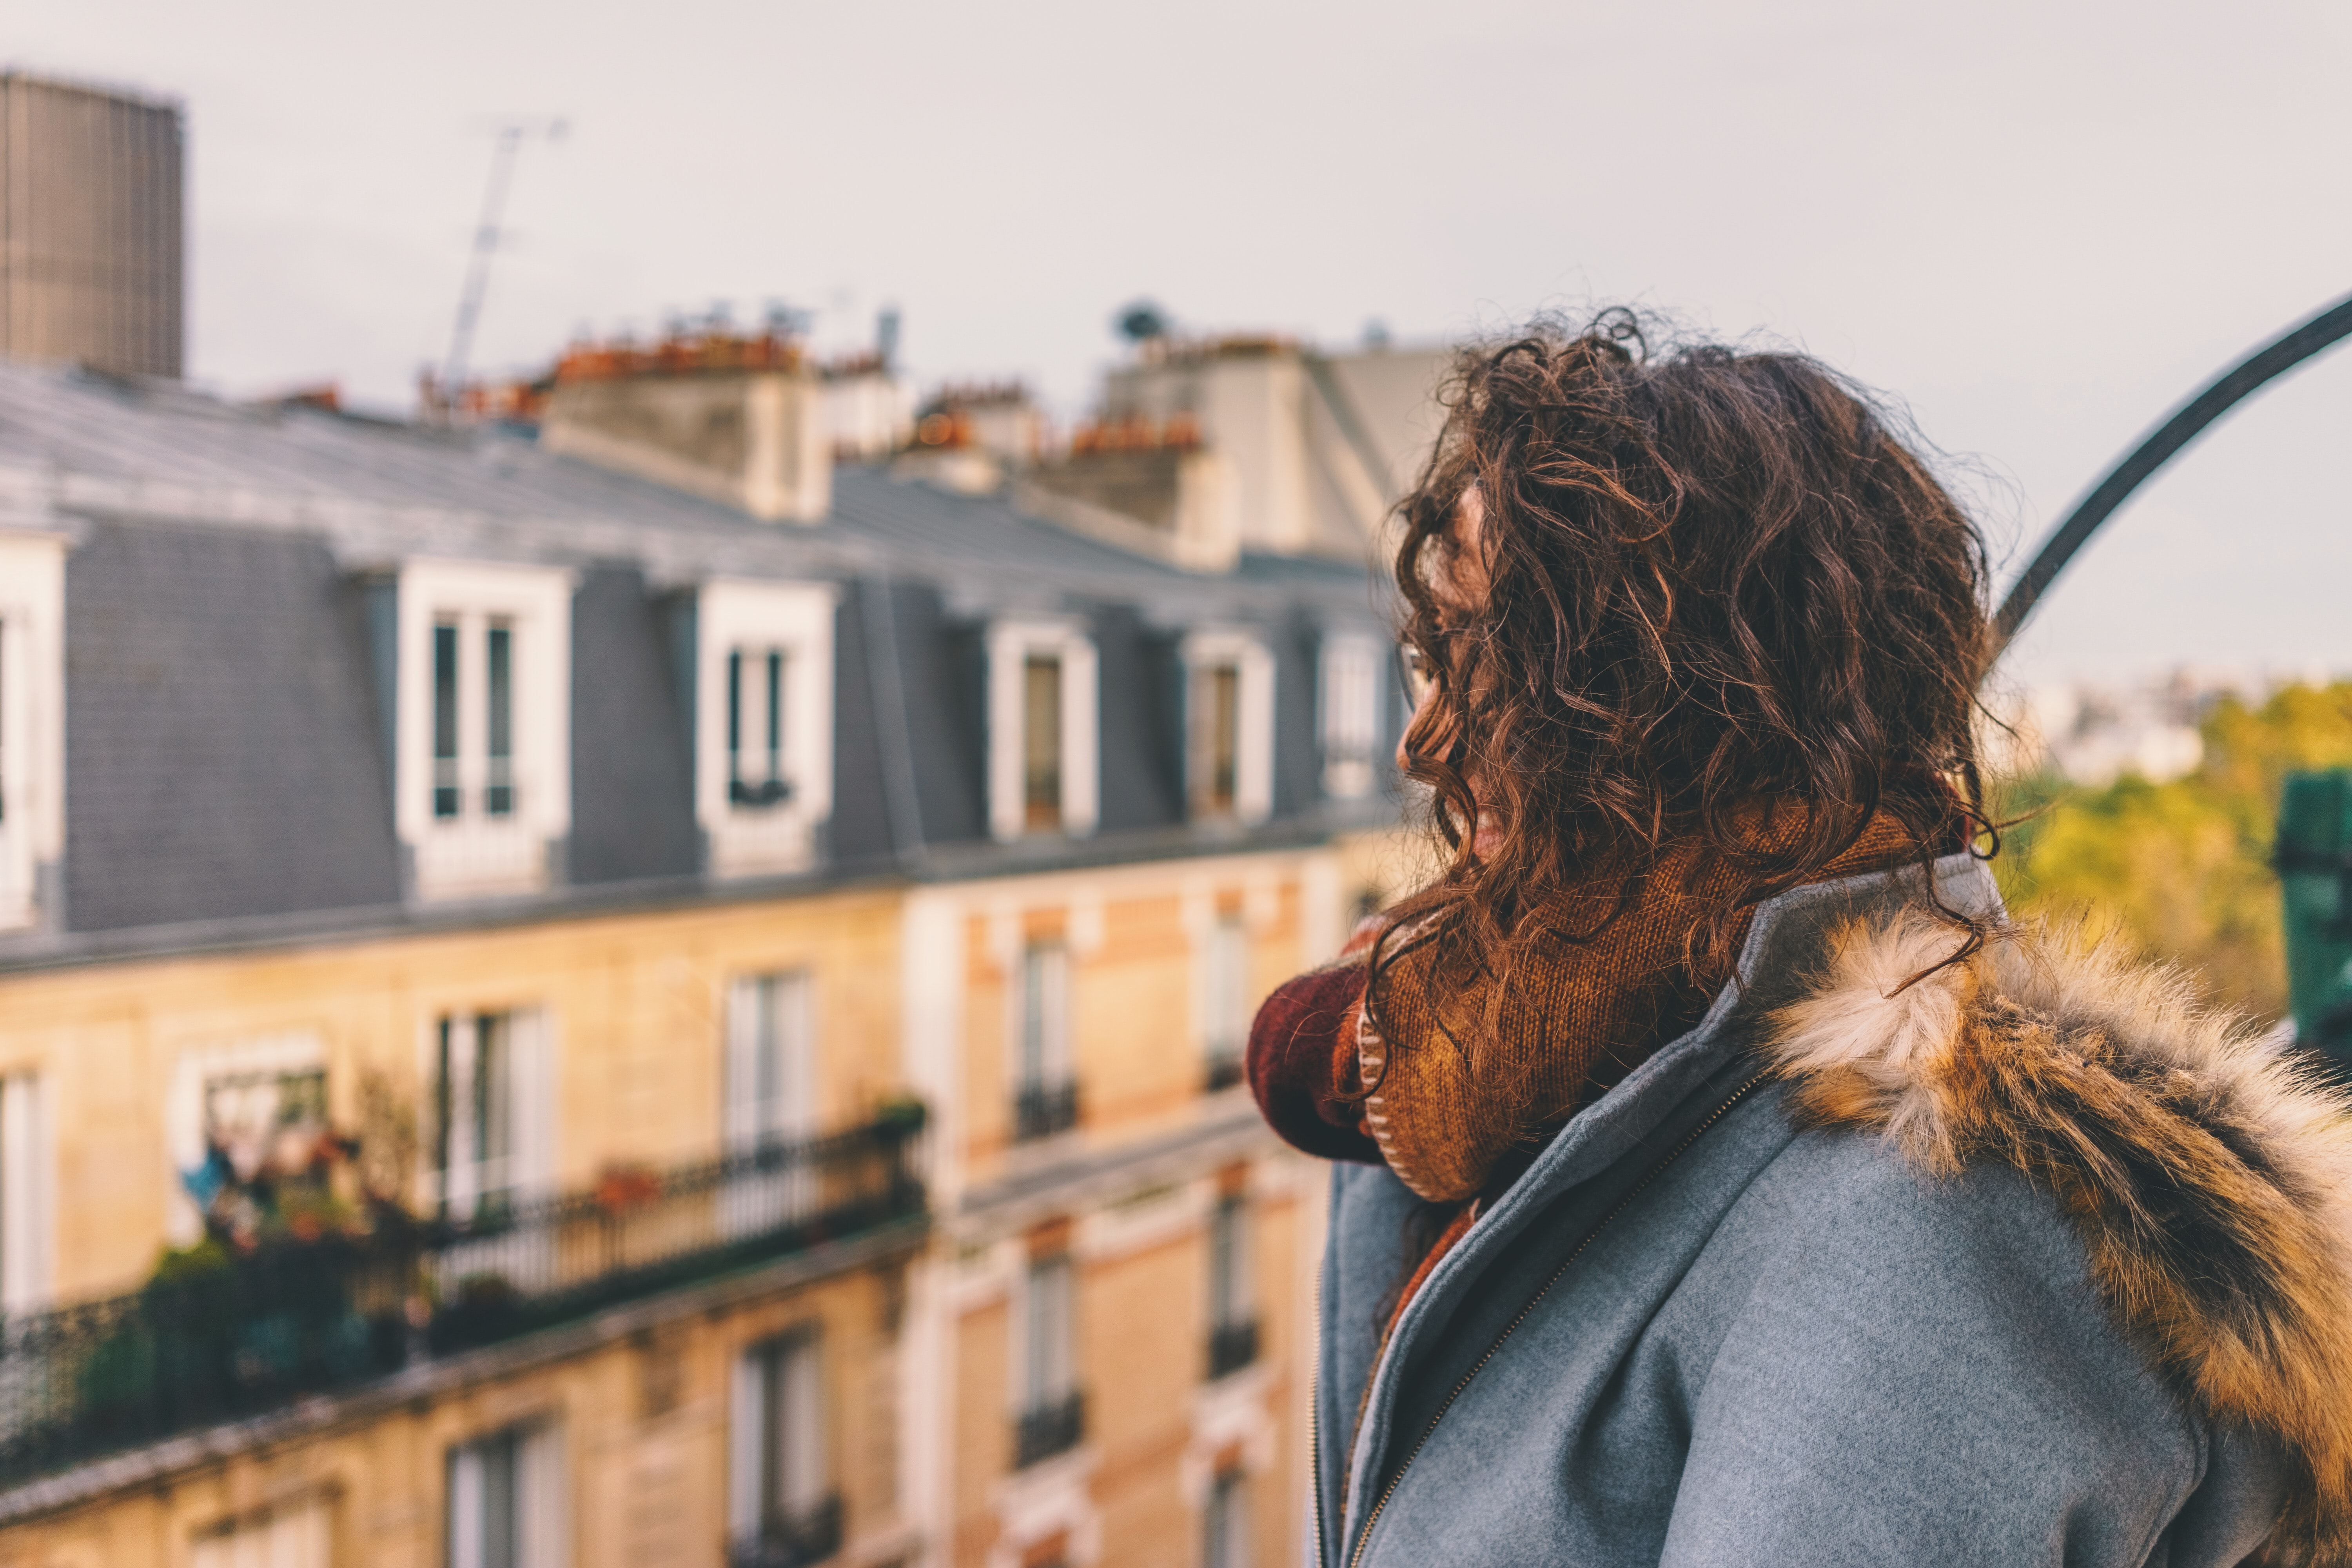 A woman wearing a jacket and scarf with Parisian architecture in the background.